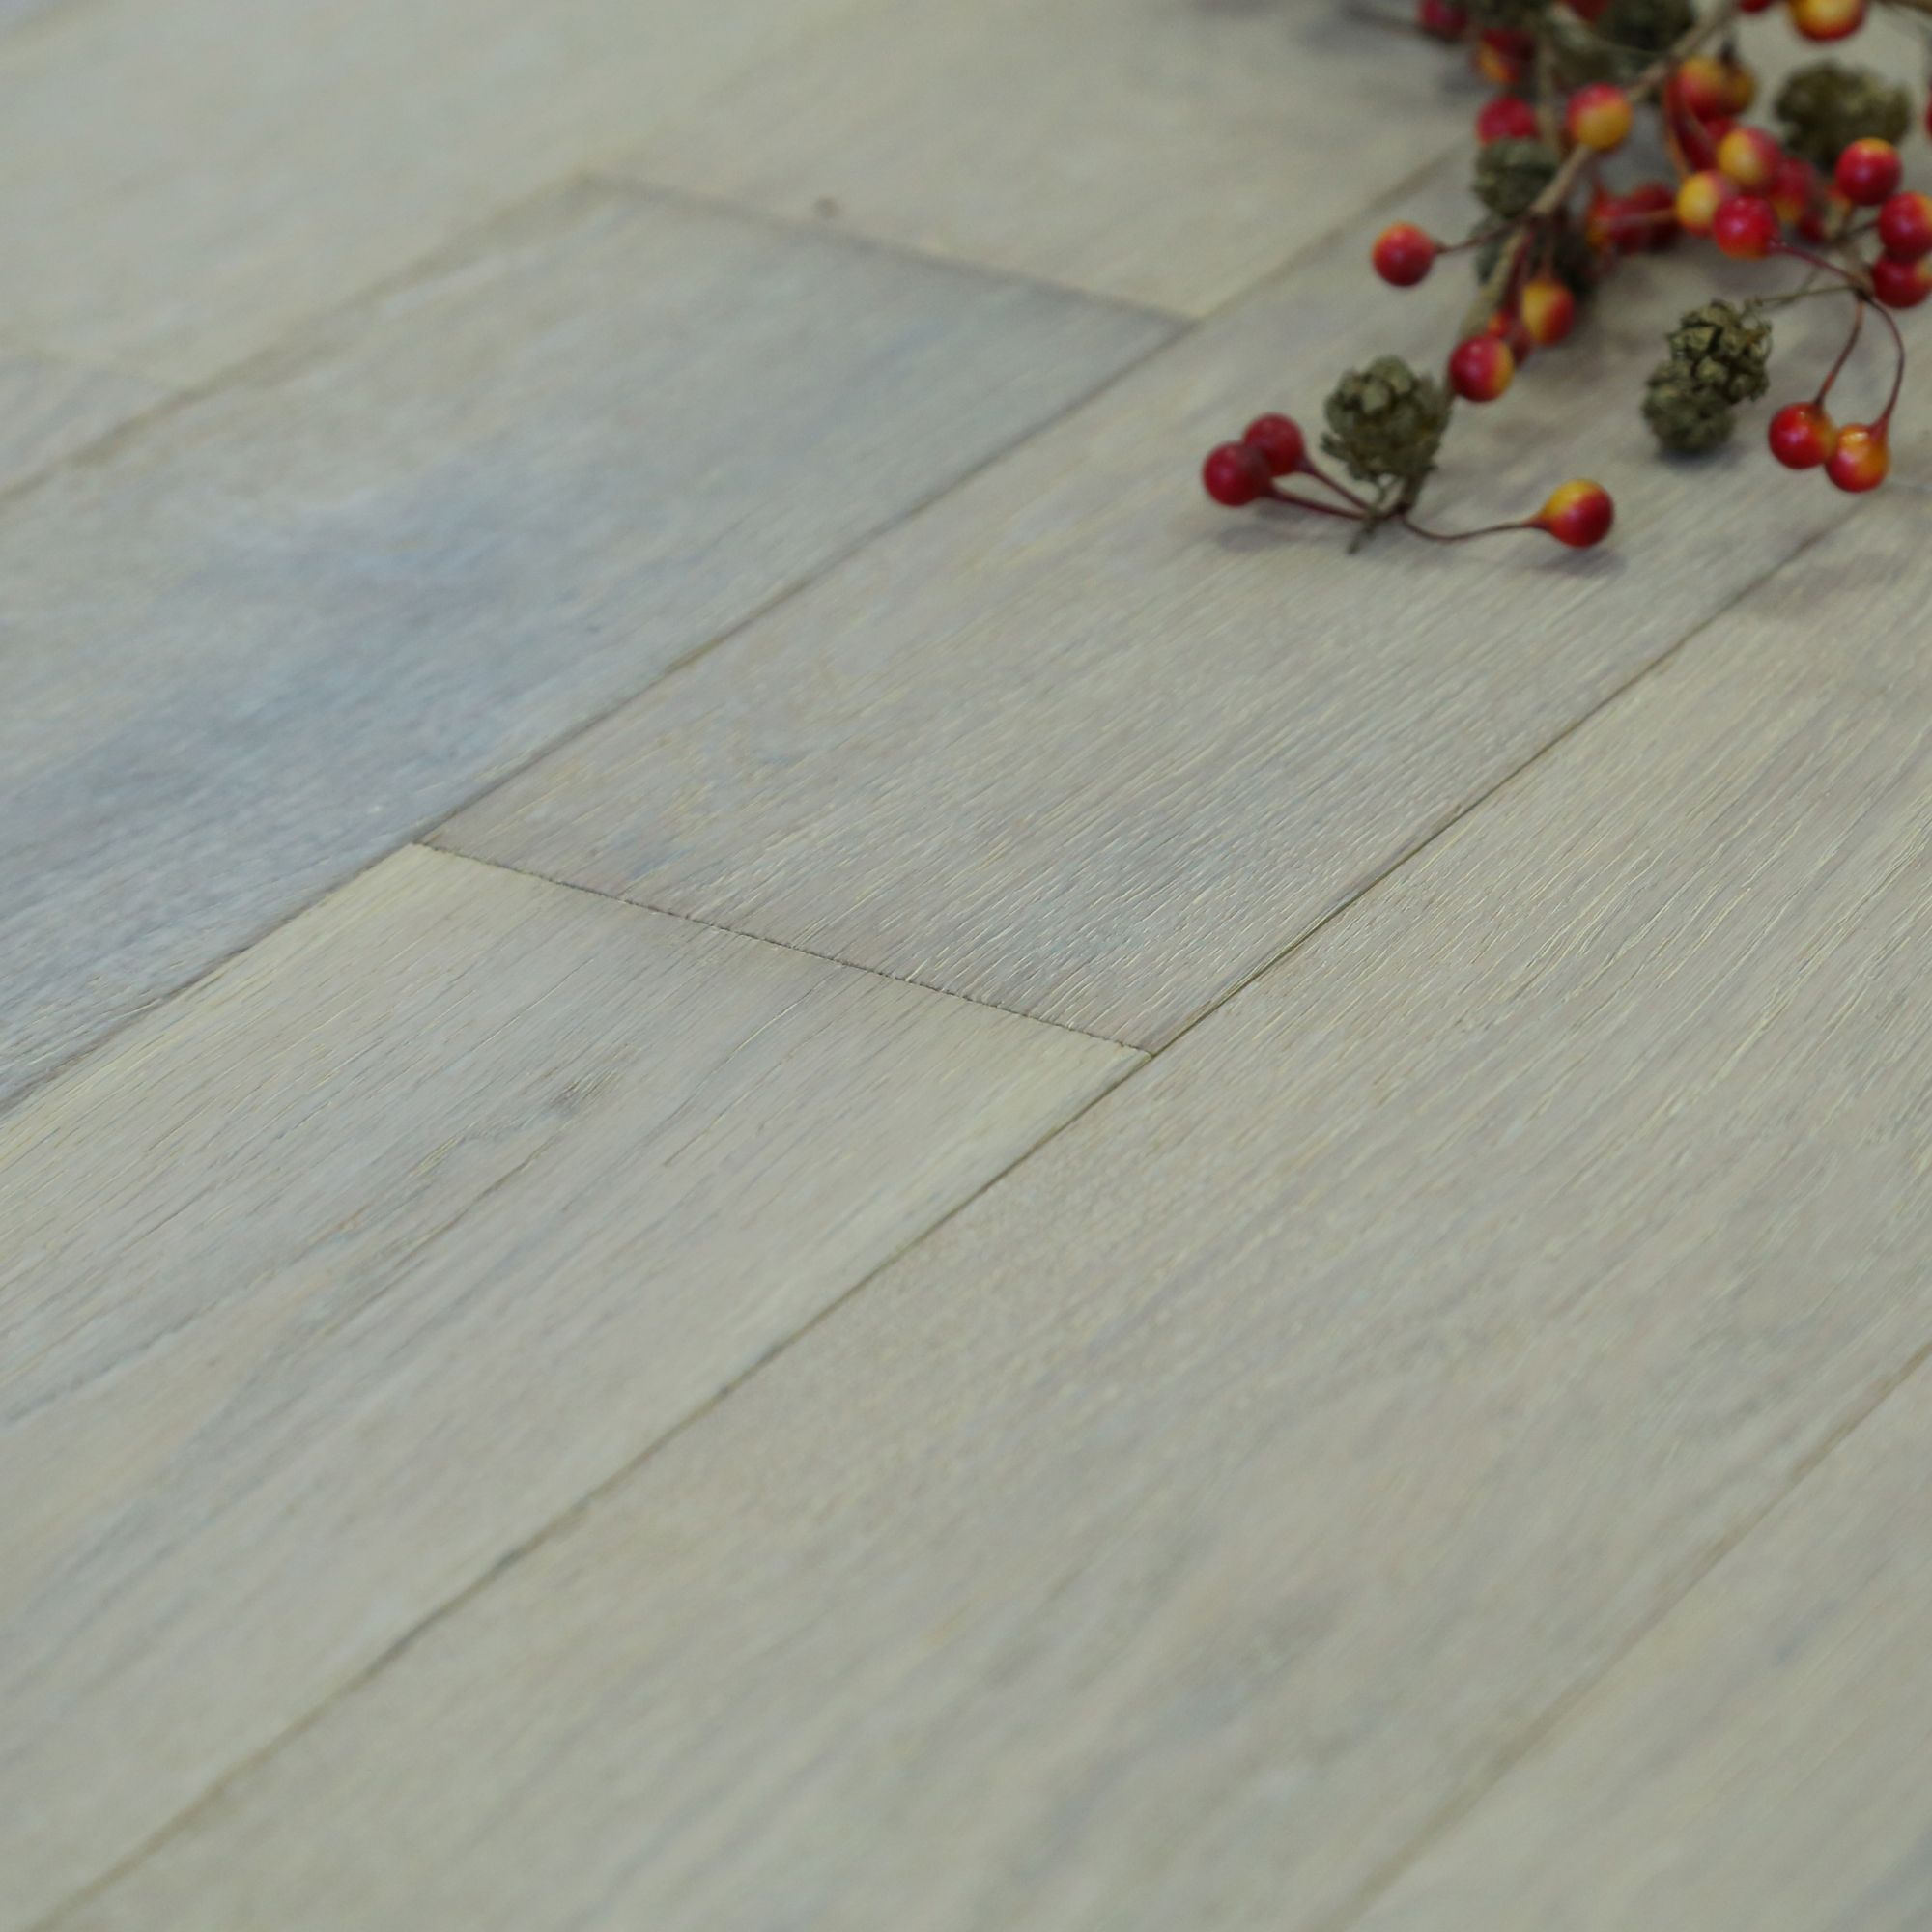 have installed different valenti hardwood are of all sanded select floors we and grades without blog some a finished that red here stain oak white natural golden flooring